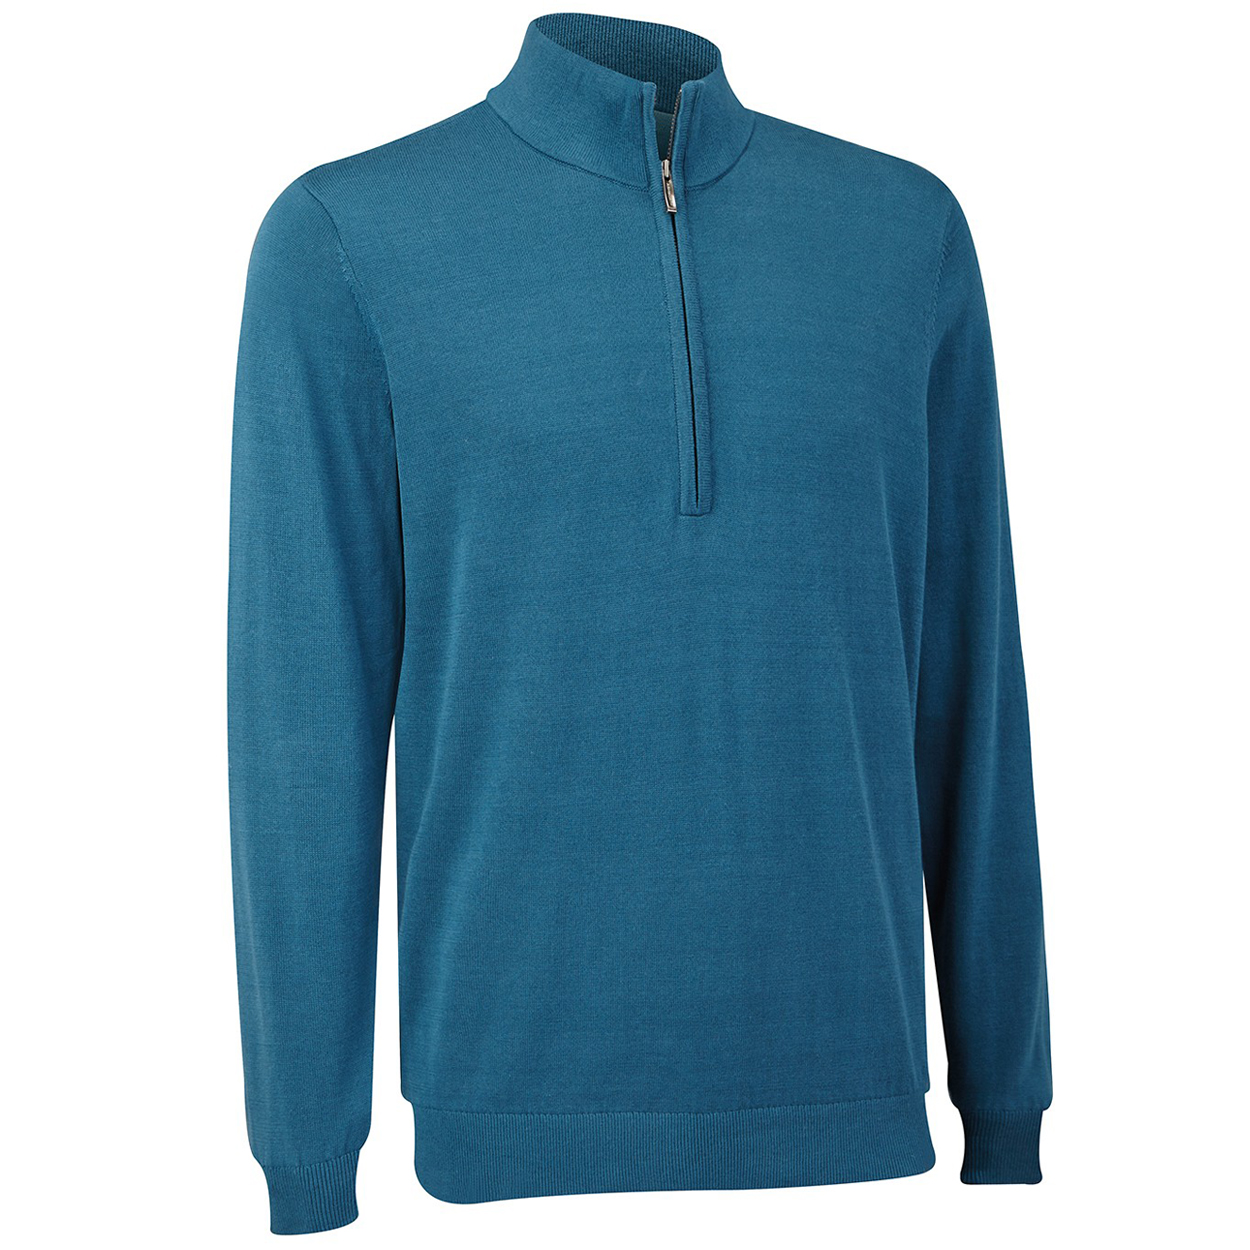 The Ashworth Golf Mens Pima Half-Zip Sweater is for those who want to look good while staying active. Made with the most advanced Ashworth fabrics and featuring athletic styling~ this pullover will be the talk of the club. Ashworth has been making stylish~ comfortable and performance oriented garmen